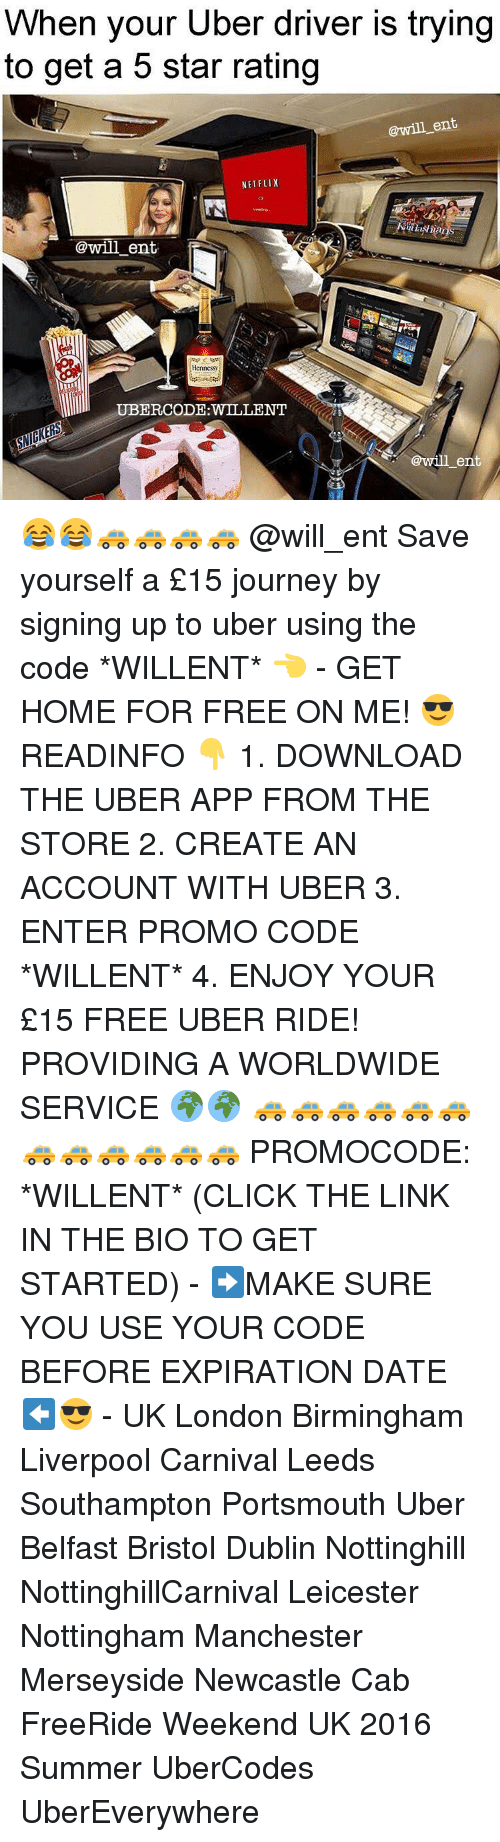 Hennessy, Journey, and Memes: When your Uber driver is trying  to get a 5 star rating  @will ent  NETFLIX  @will ent.  Hennessy  @will ent 😂😂🚕🚕🚕🚕 @will_ent Save yourself a £15 journey by signing up to uber using the code *WILLENT* 👈 - GET HOME FOR FREE ON ME! 😎 READINFO 👇 1. DOWNLOAD THE UBER APP FROM THE STORE 2. CREATE AN ACCOUNT WITH UBER 3. ENTER PROMO CODE *WILLENT* 4. ENJOY YOUR £15 FREE UBER RIDE! PROVIDING A WORLDWIDE SERVICE 🌍🌍 🚕🚕🚕🚕🚕🚕🚕🚕🚕🚕🚕🚕 PROMOCODE: *WILLENT* (CLICK THE LINK IN THE BIO TO GET STARTED) - ➡️MAKE SURE YOU USE YOUR CODE BEFORE EXPIRATION DATE ⬅️😎 - UK London Birmingham Liverpool Carnival Leeds Southampton Portsmouth Uber Belfast Bristol Dublin Nottinghill NottinghillCarnival Leicester Nottingham Manchester Merseyside Newcastle Cab FreeRide Weekend UK 2016 Summer UberCodes UberEverywhere